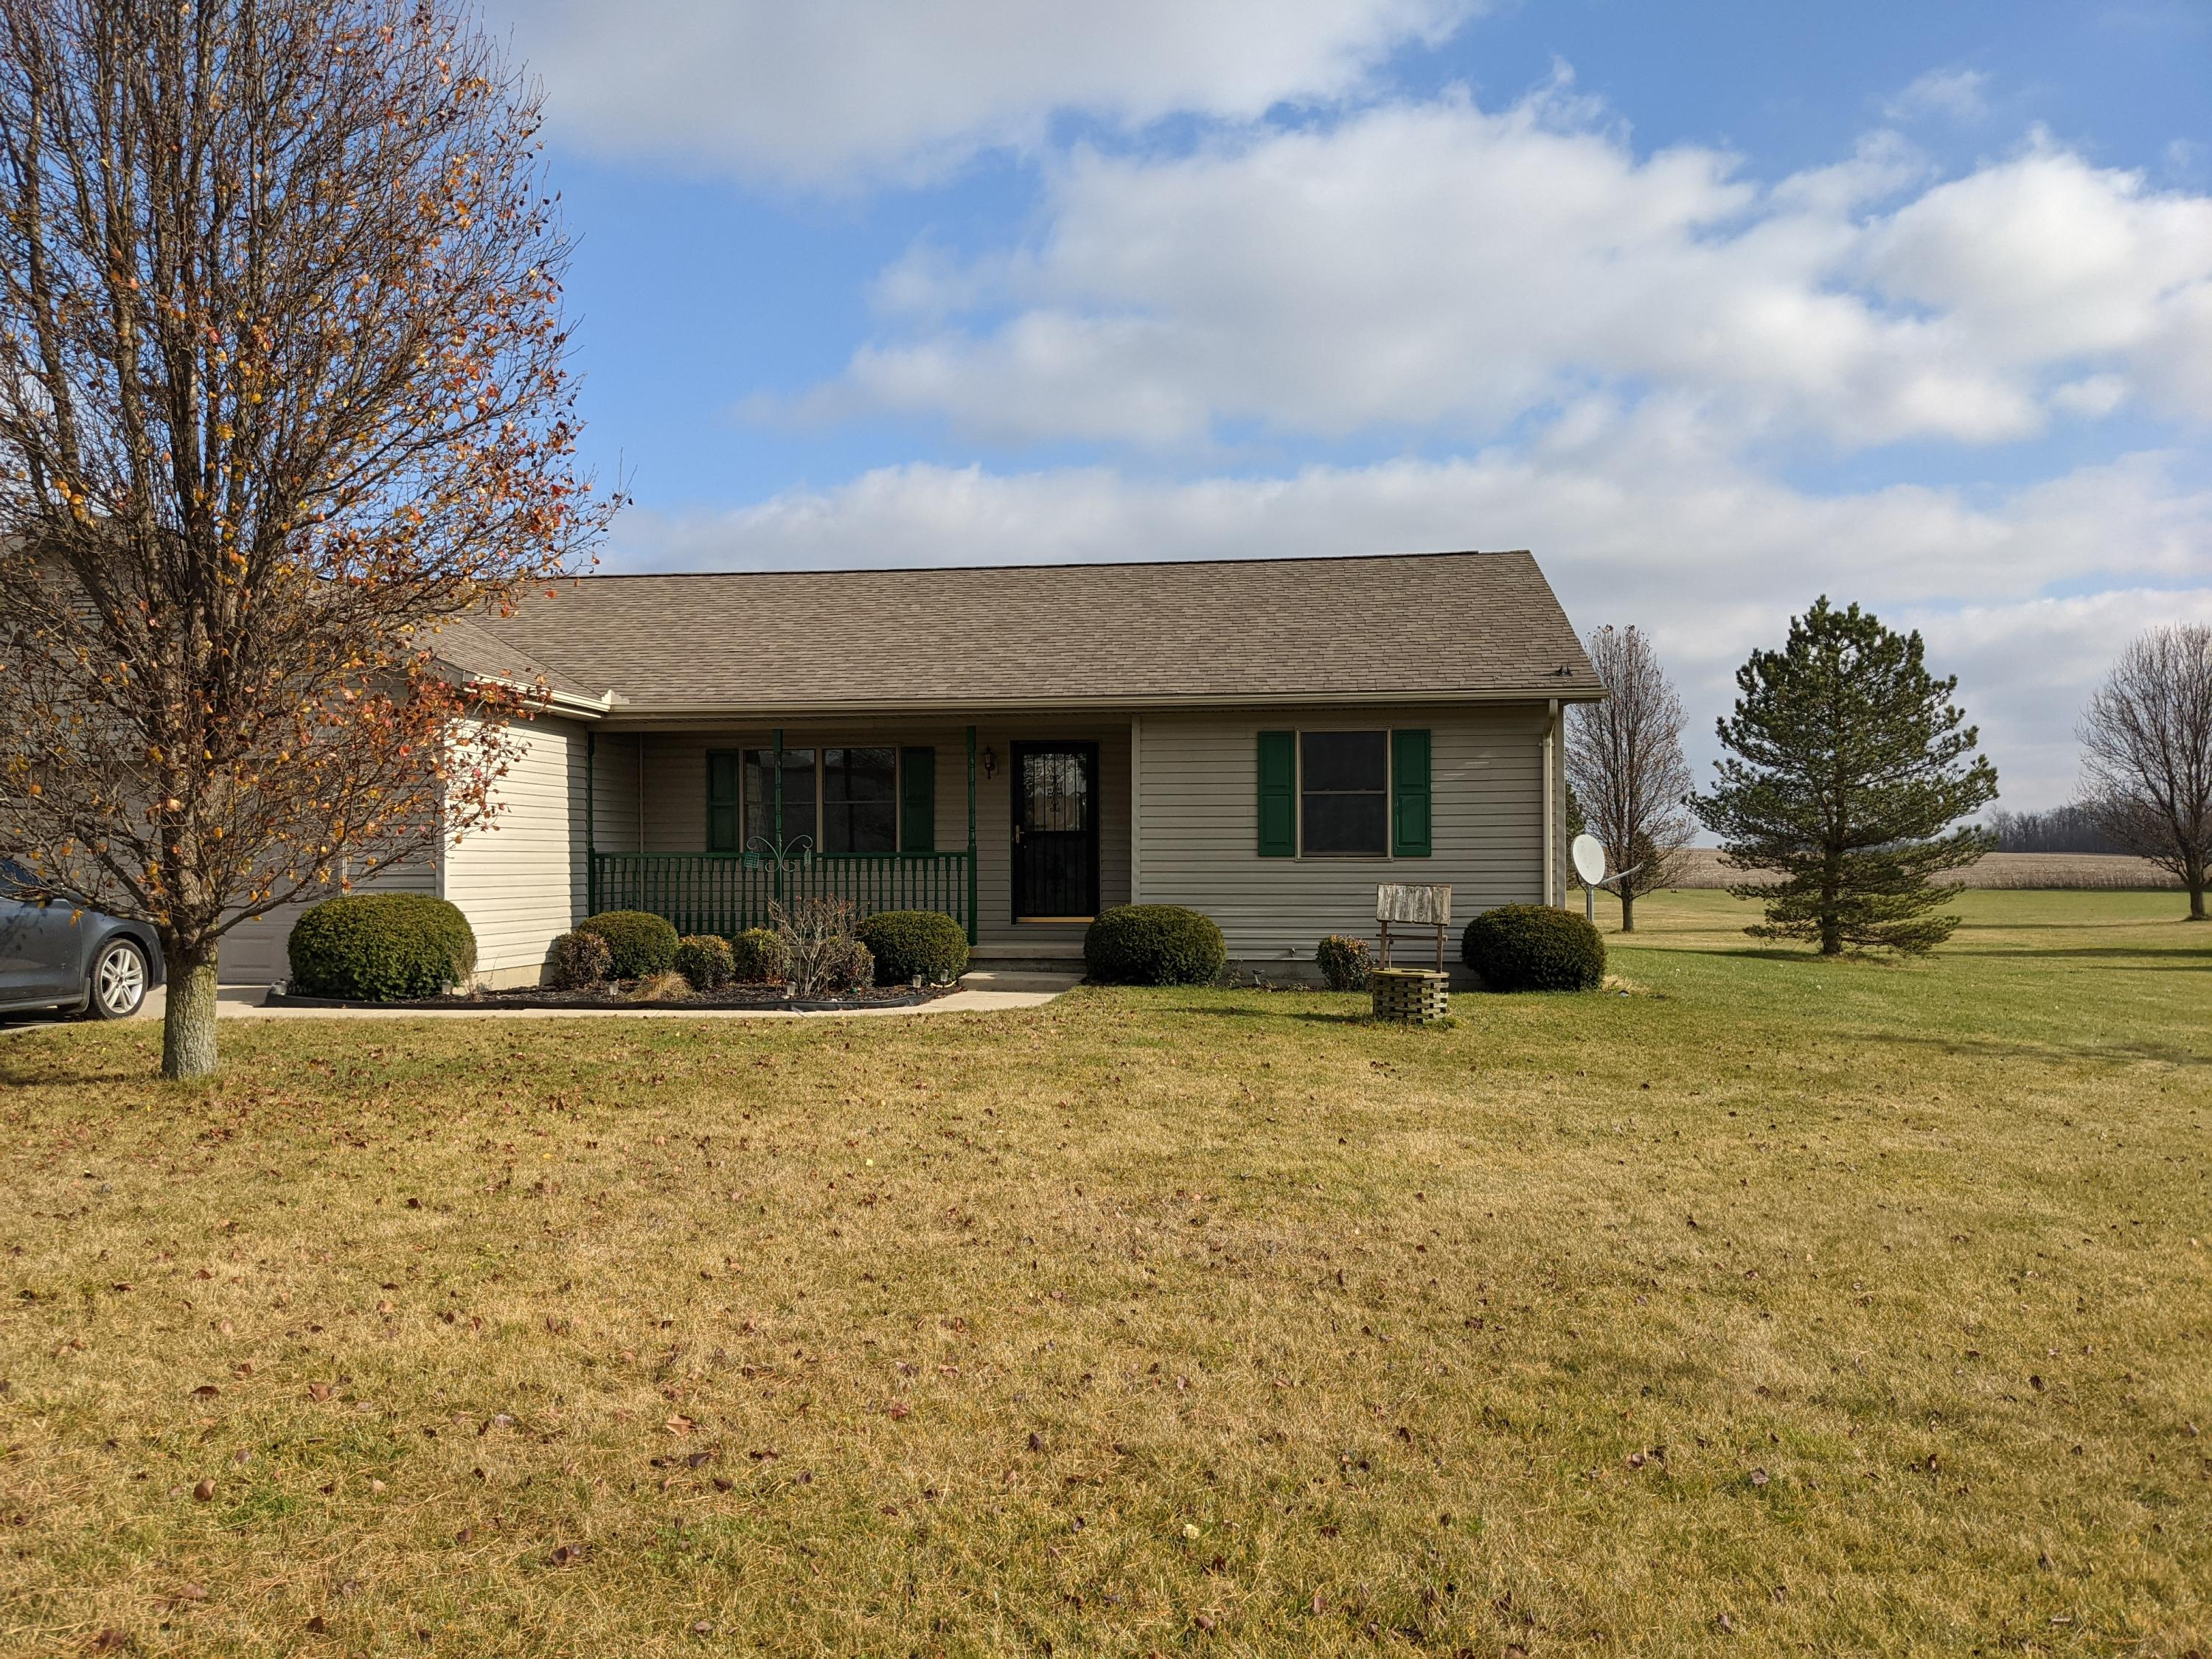 Photo 1 for 12300 Shroyer Rd Maplewood, OH 45340